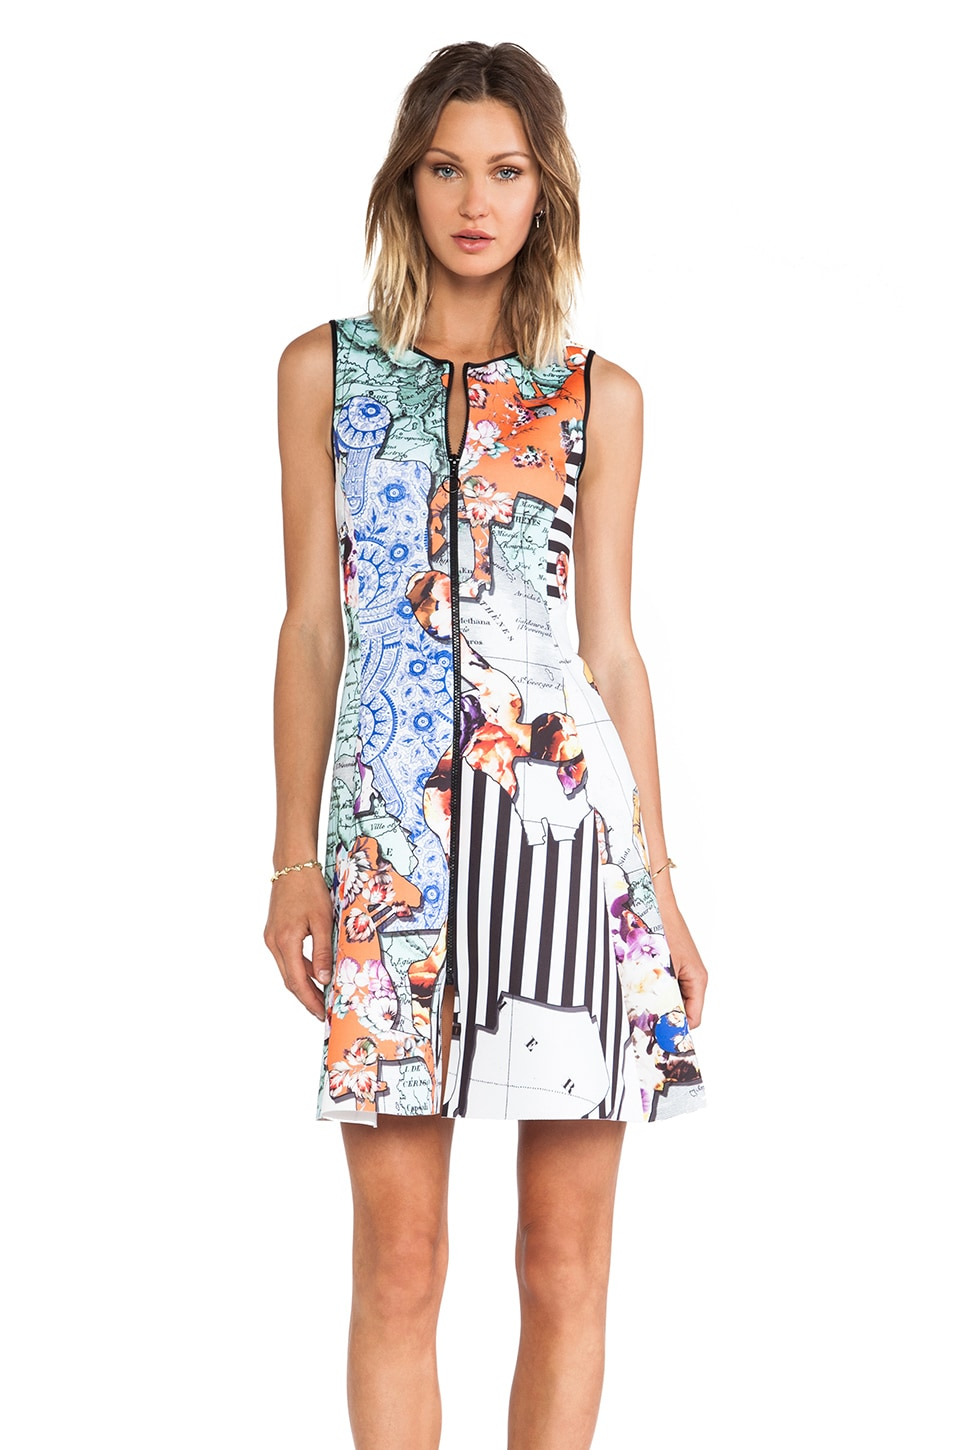 Clover Canyon Floral Silhouettes Neoprene Dress in Multi